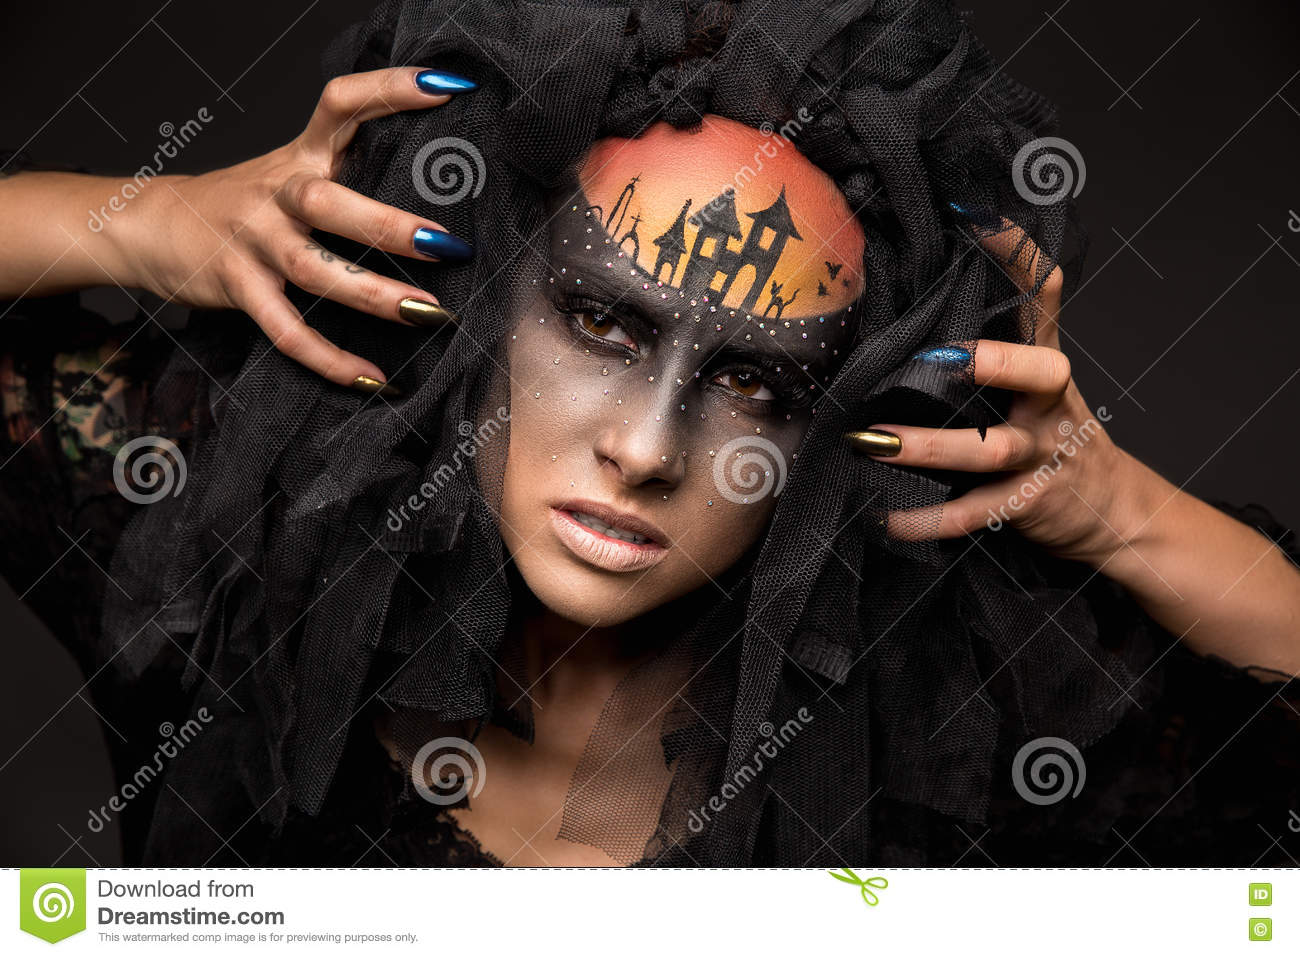 Halloween Makeup Devil Girl.Scary Halloween Bride With Concept Scary Makeup Stock Photo Image